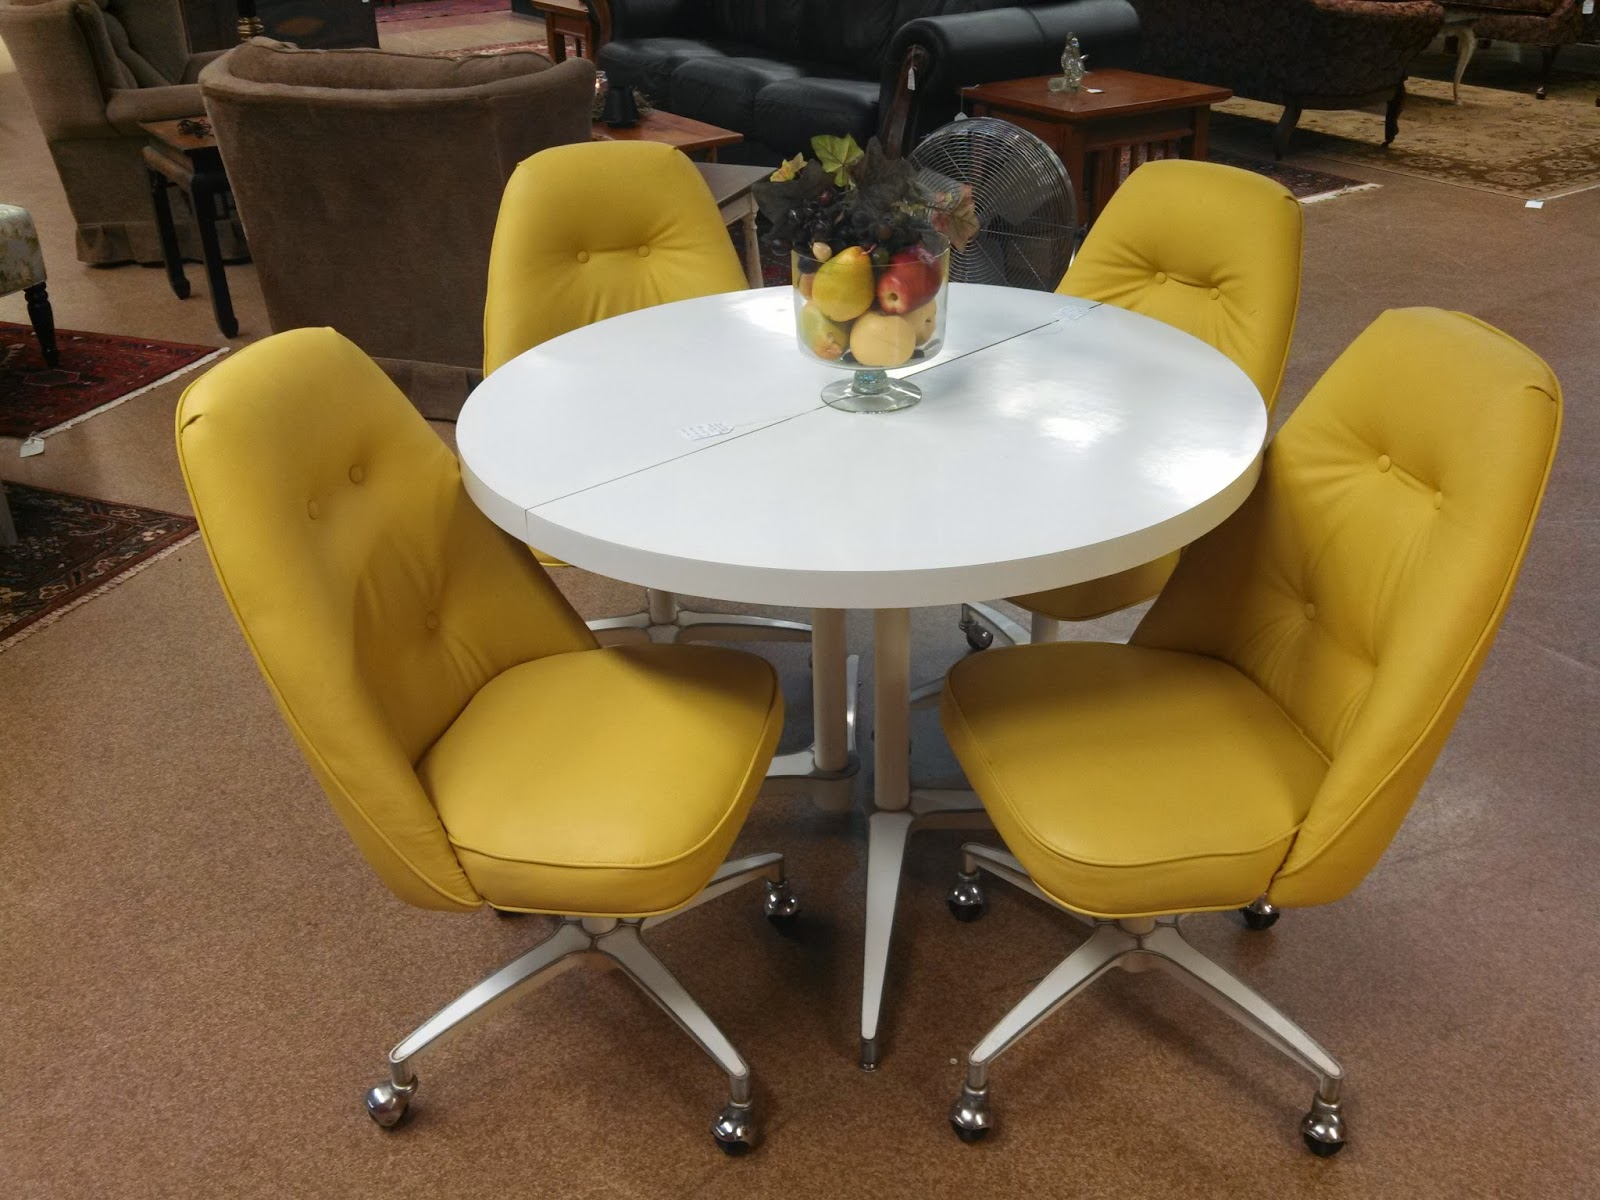 Used mid century modern furniture for sale - Consignment Consignment Store Mid Century Modern Mid Century Modern Furniture Furniture For